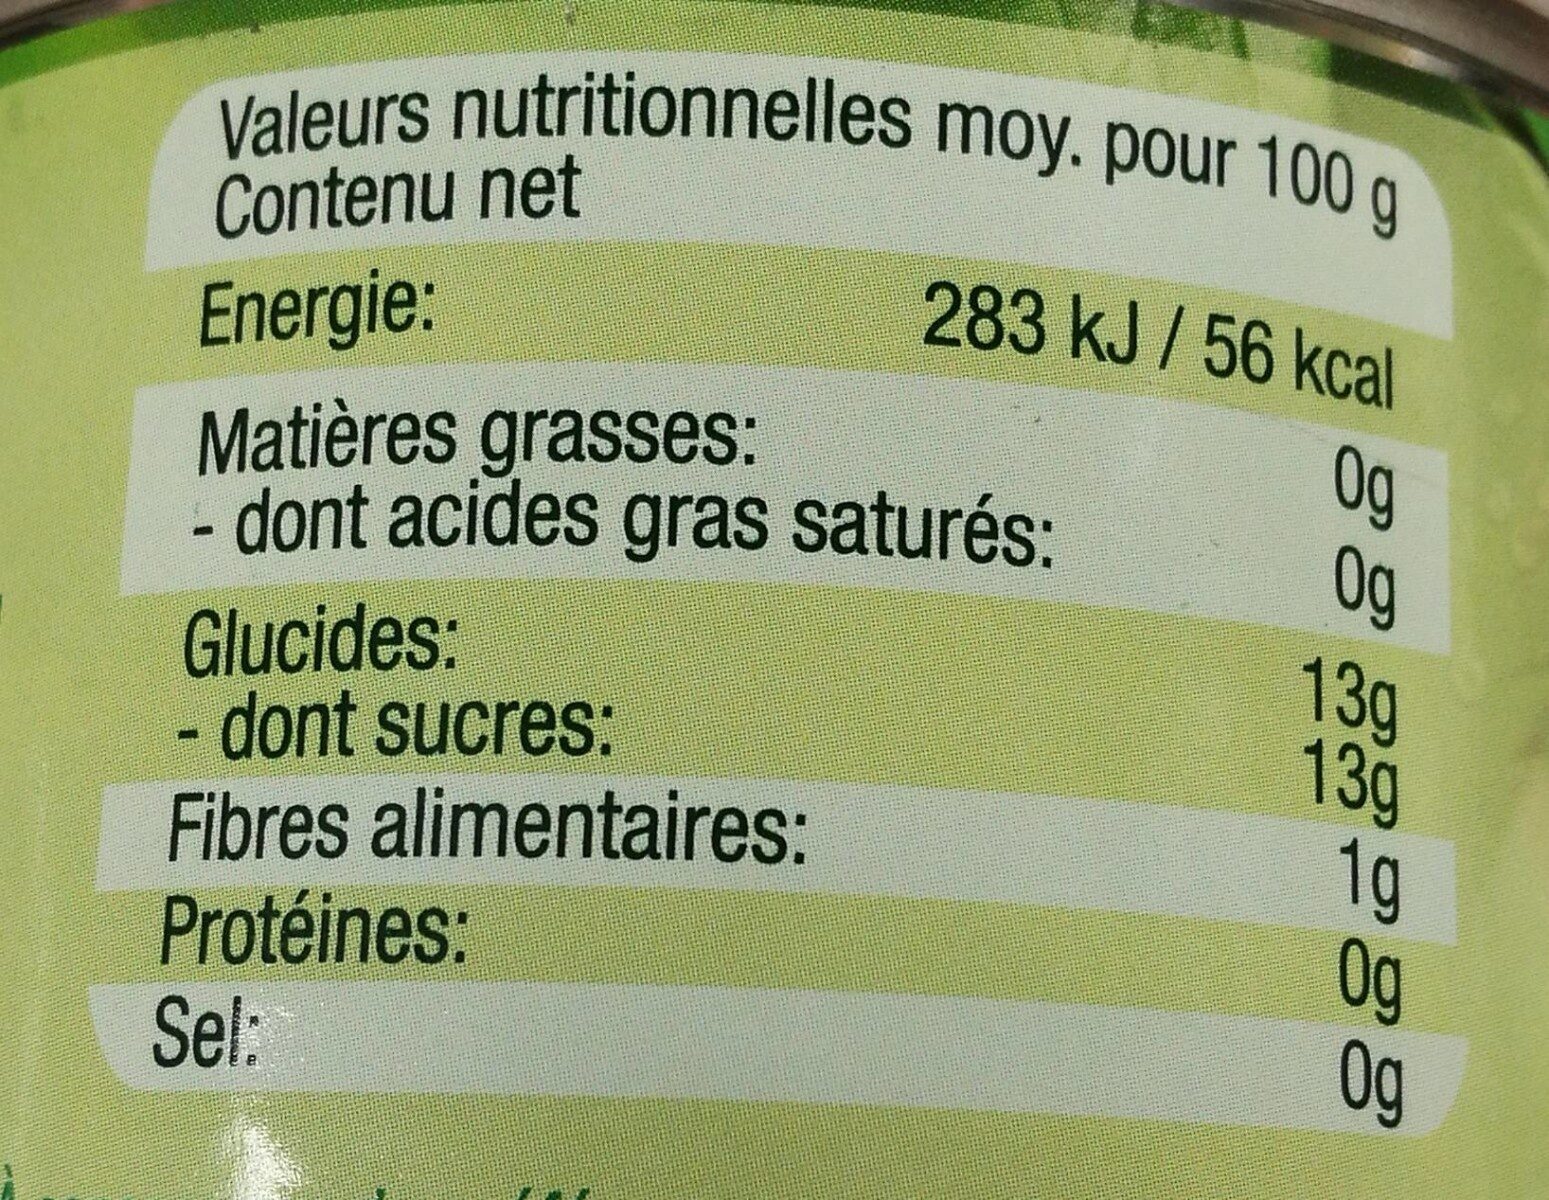 Pineapple Slices in 100% Juice - Nutrition facts - en